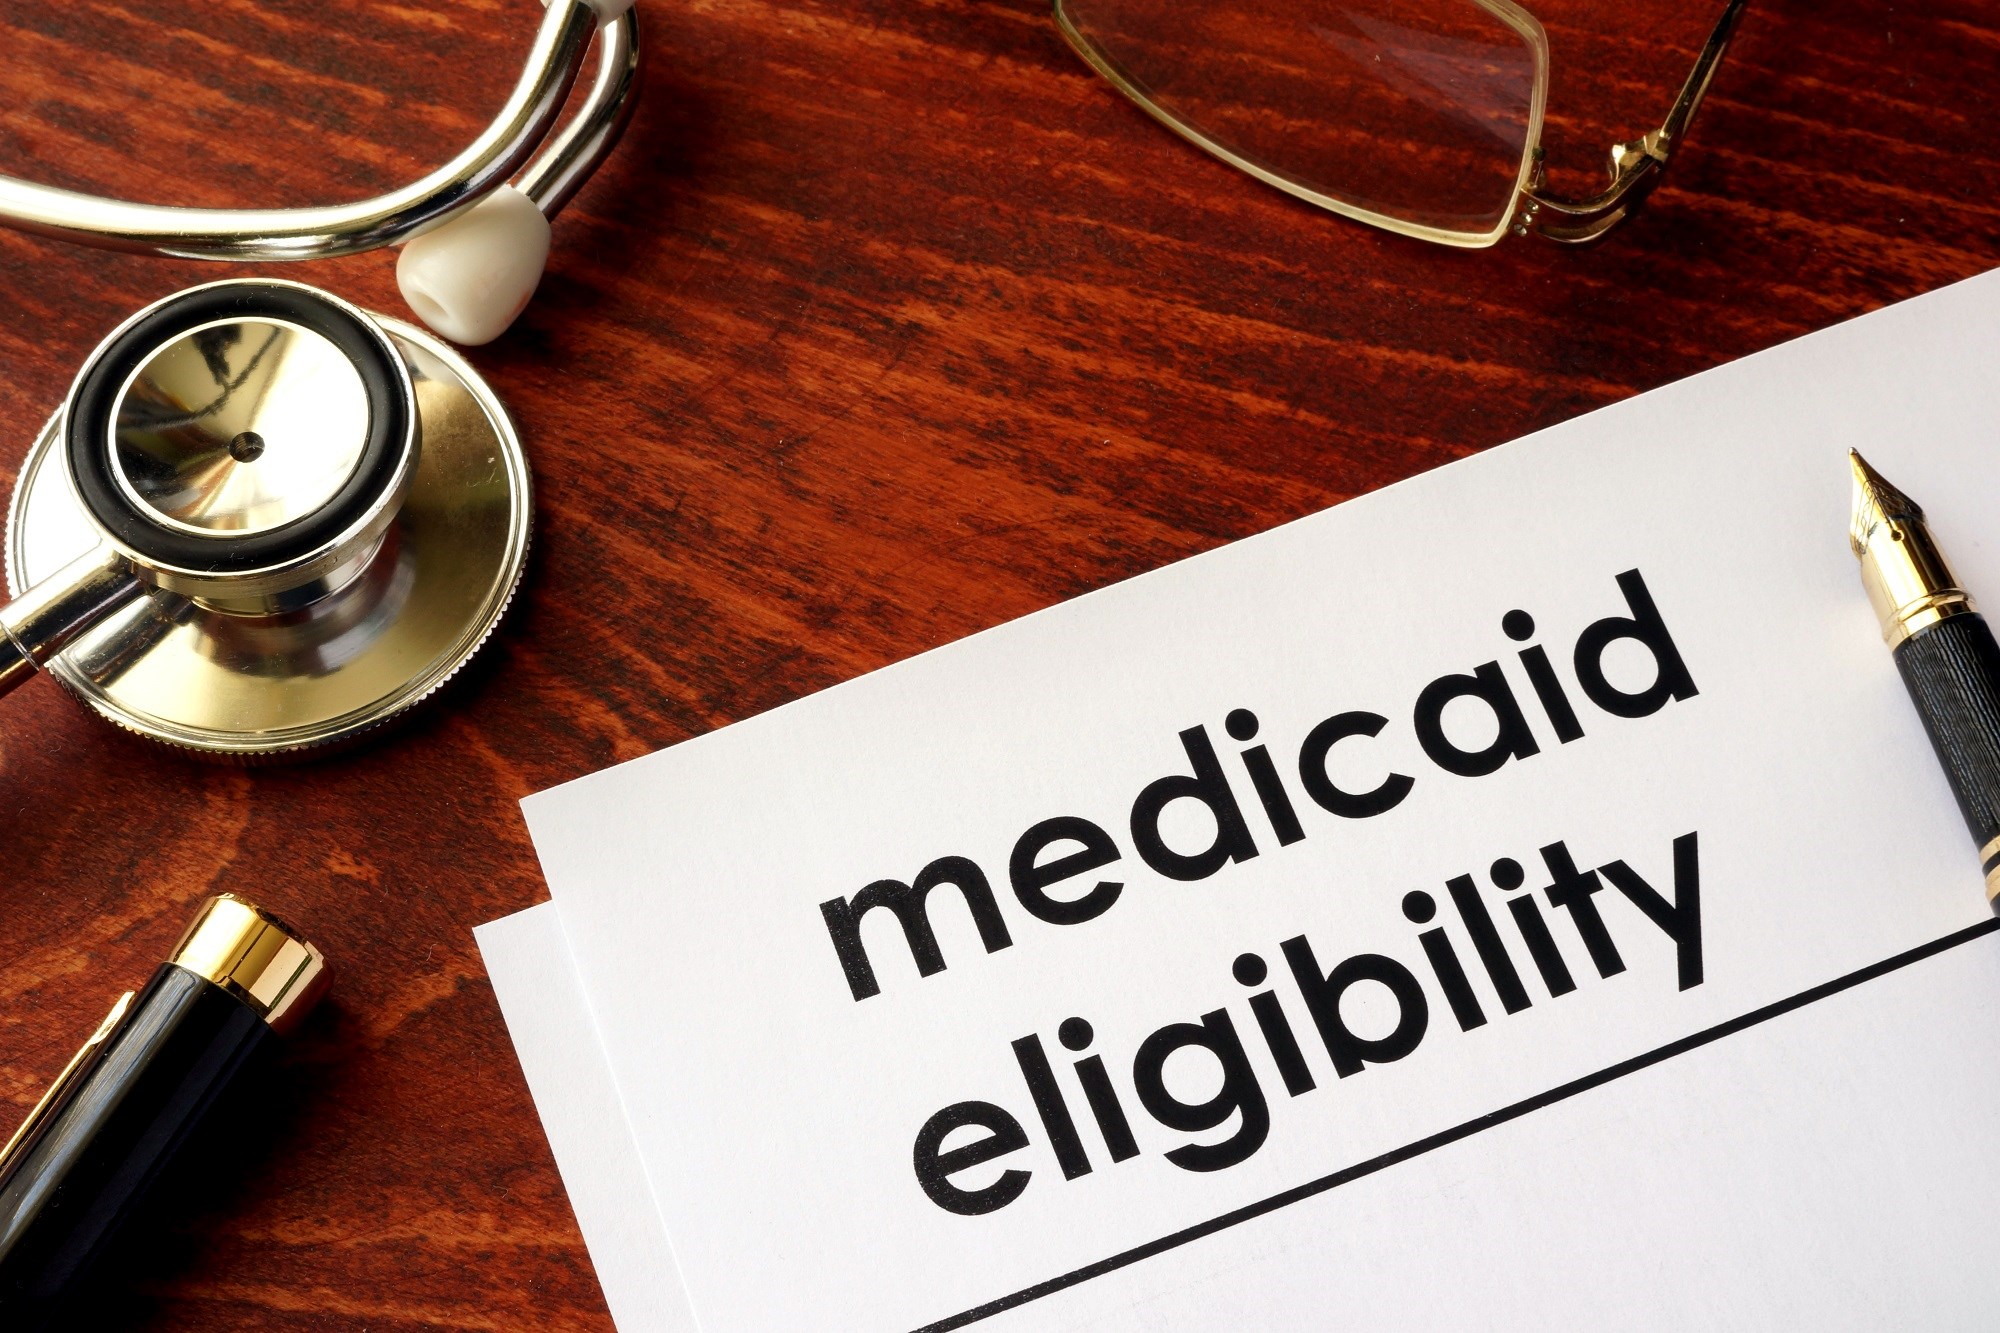 Hundreds of thousands more low-income Americans could get health insurance after voters in 3 Republican-leaning states approved Medicaid expansion in the midterm elections.